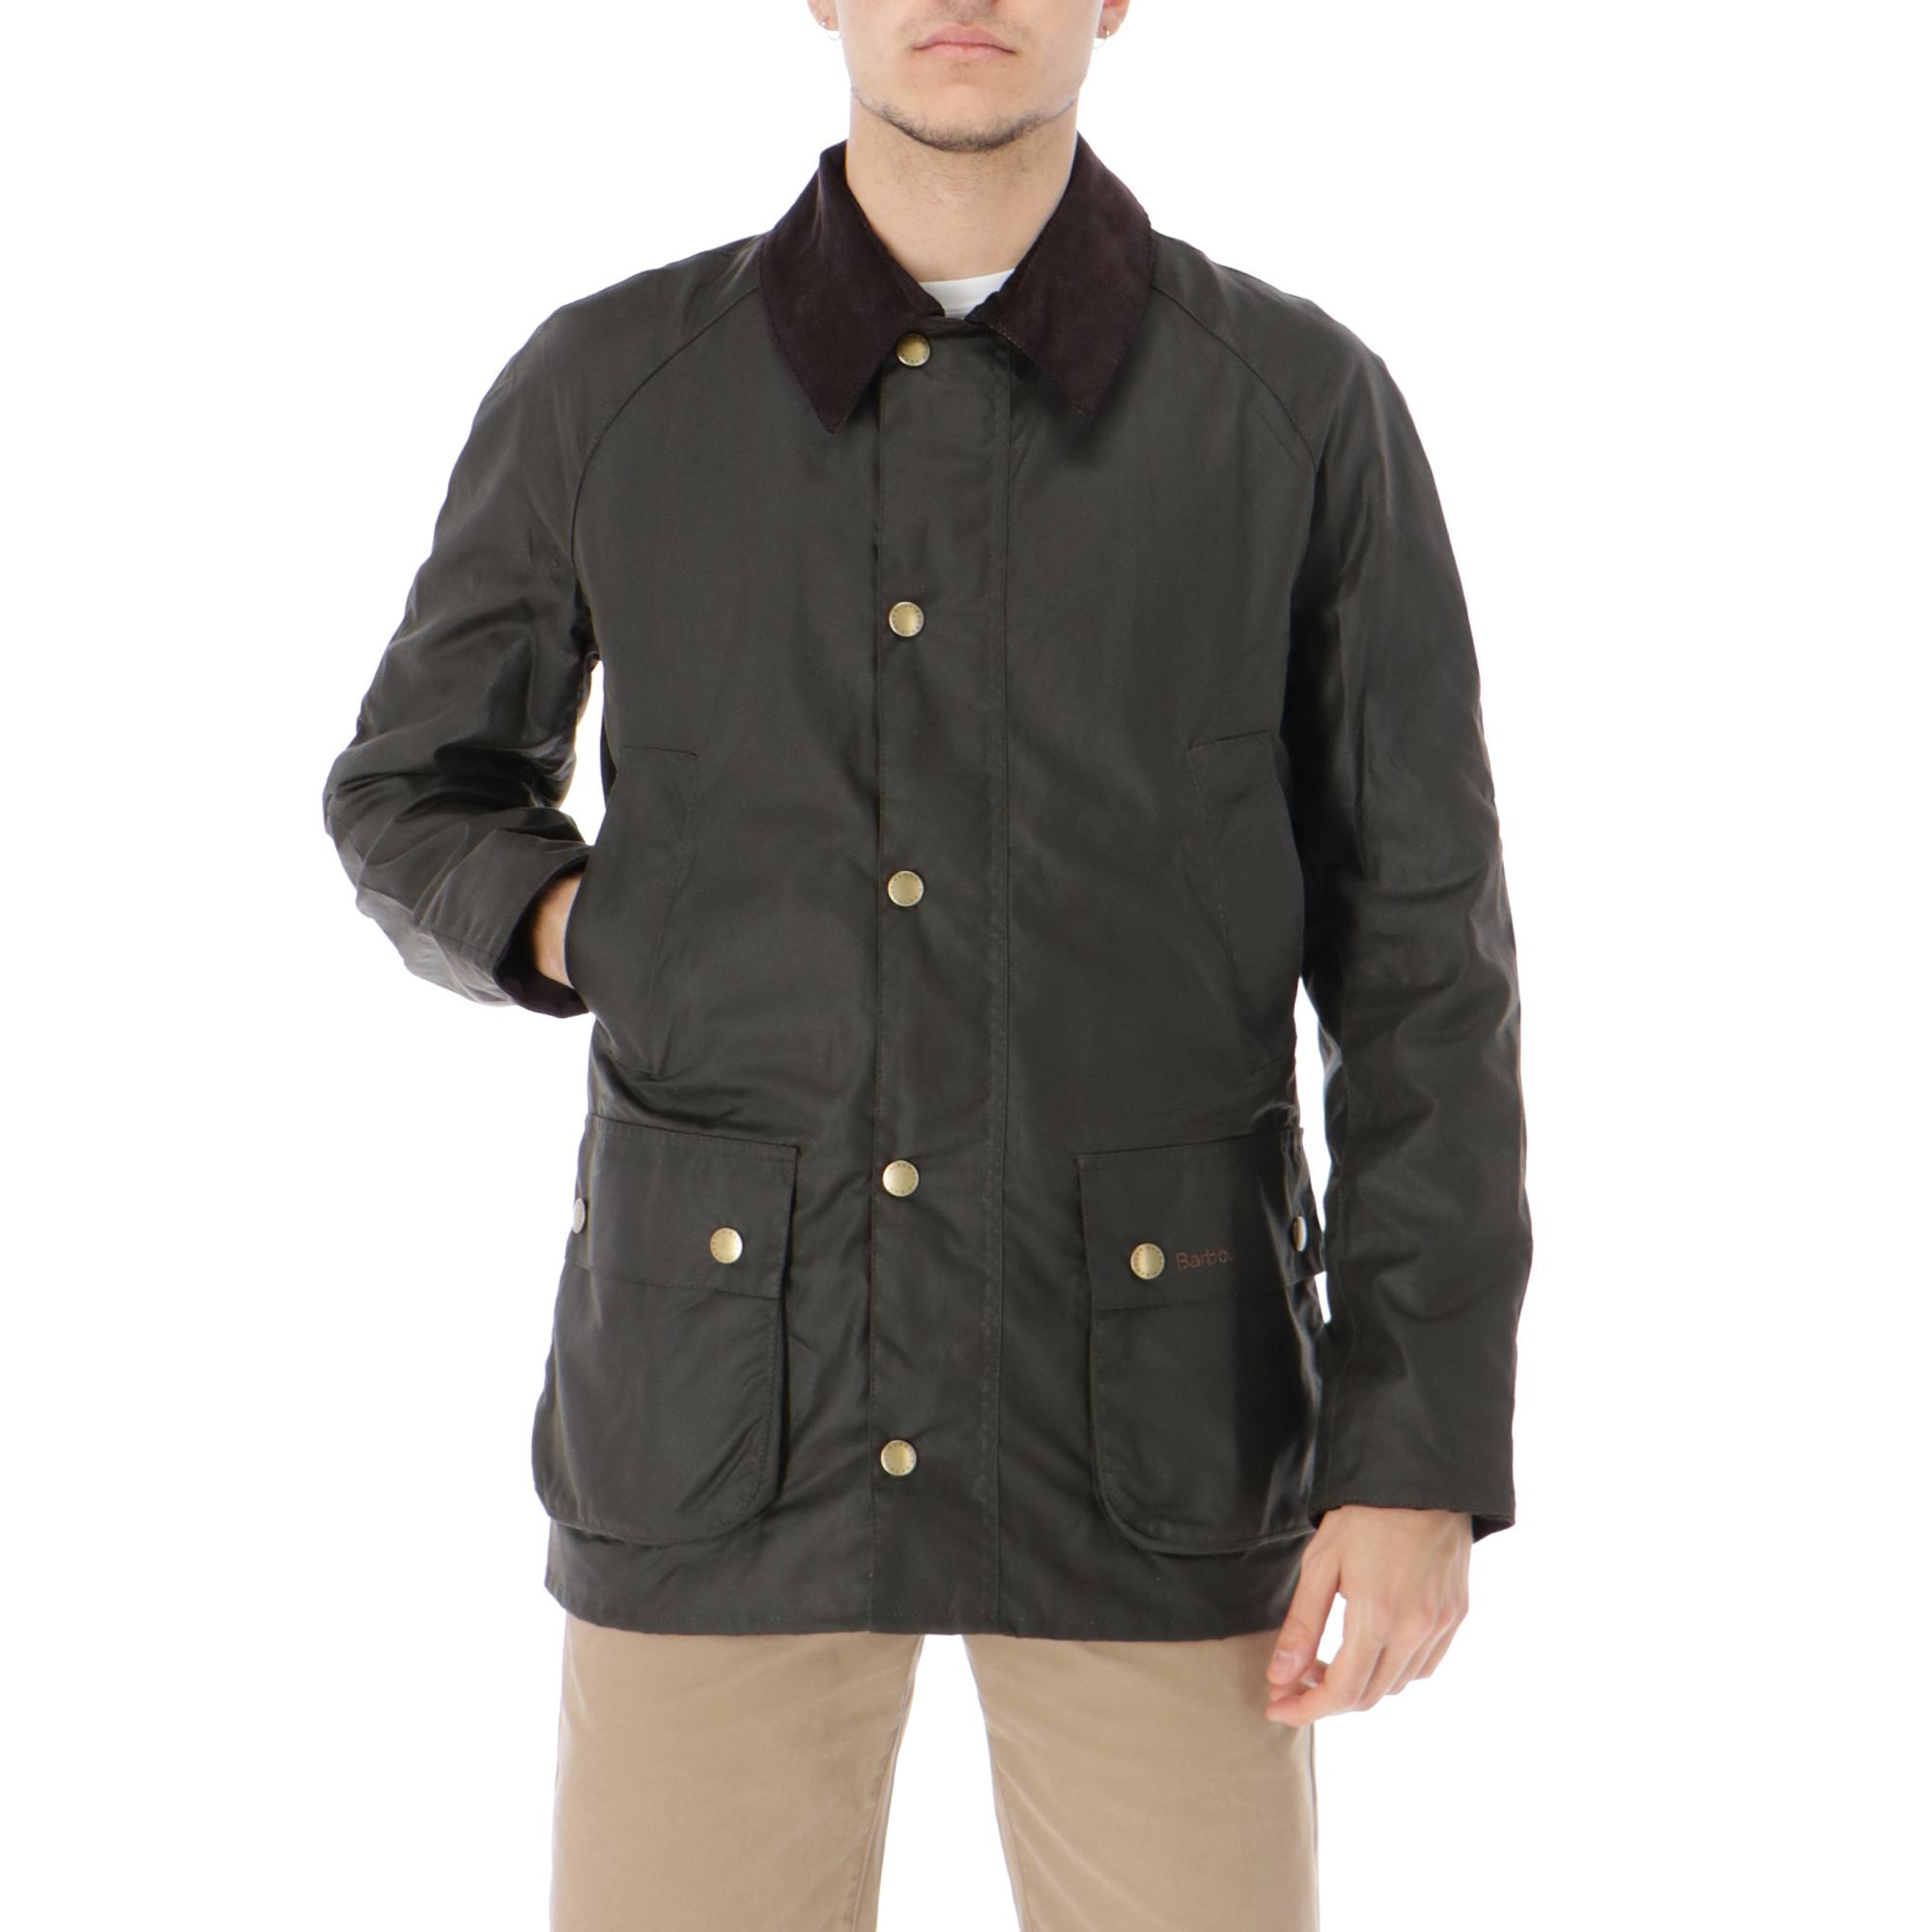 945a0dc792f Barbour Ashby Wax Jacket Olive